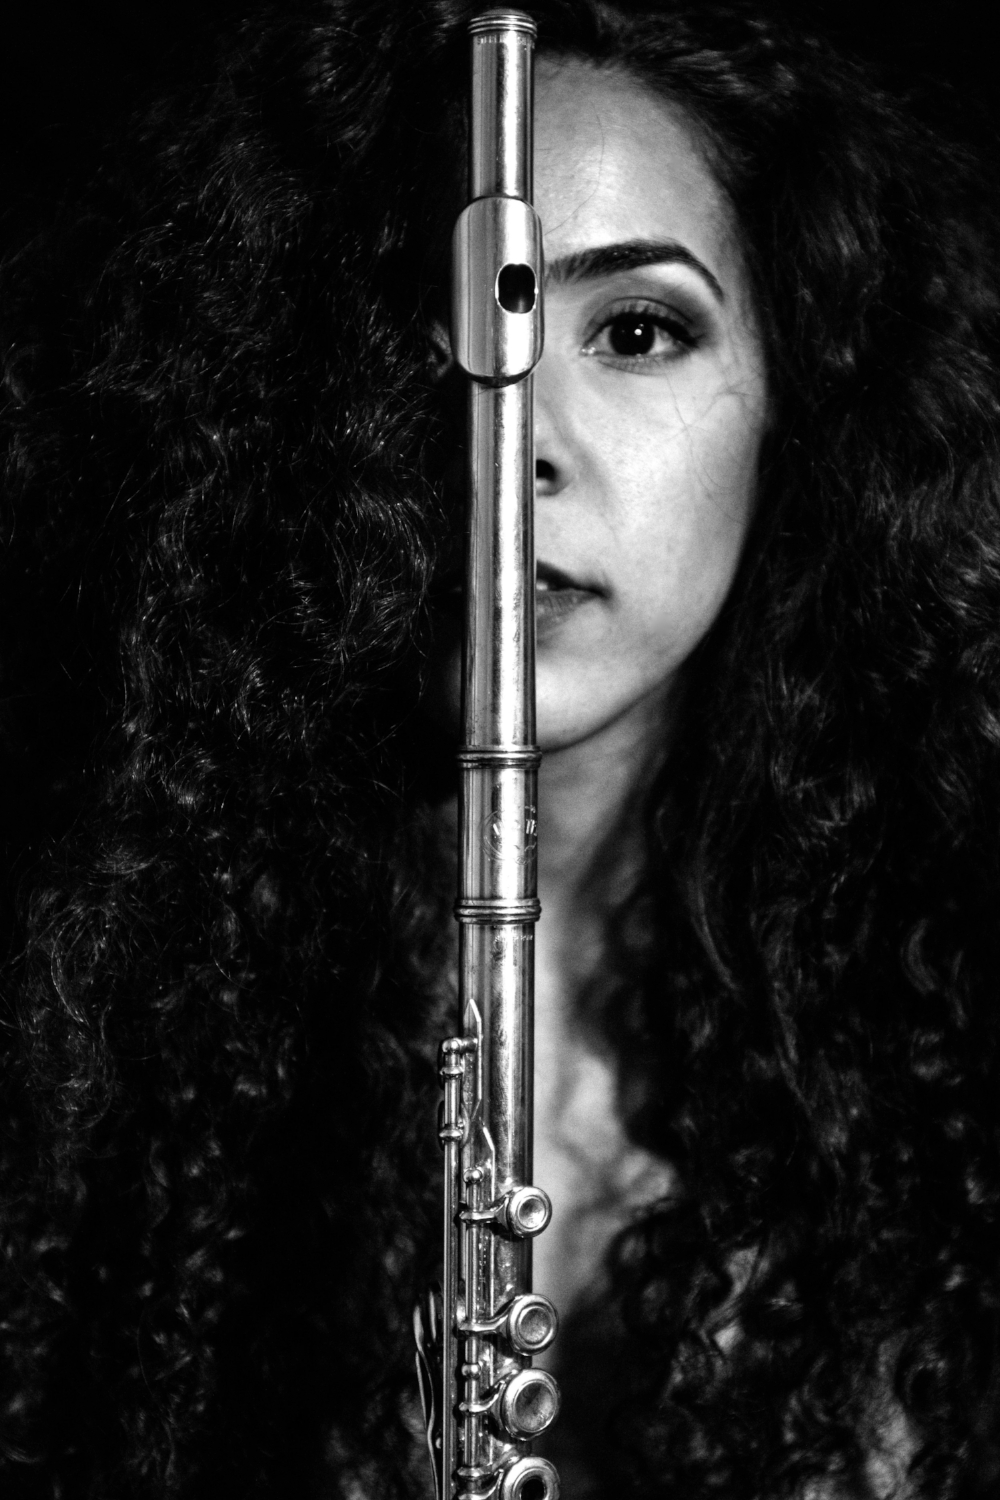 Maryem Bendaud - Flutist, Maryem Bendaoud is a soloist, chamber musician, and educator. A native Floridian, she performs with several ensembles in the area, including DuVachki Woodwind Quintet, El Trio Mio, and the South Florida Flute Orchestra. Her most recent solo appearances have been at Jureit Musicales, Boca Raton Museum of Modern Art, Max Planck Neuroscience Institute, and the Treasure Coast Flute Festival. Maryem is an avid teacher and maintains a private studio teaching young aspiring flutists.